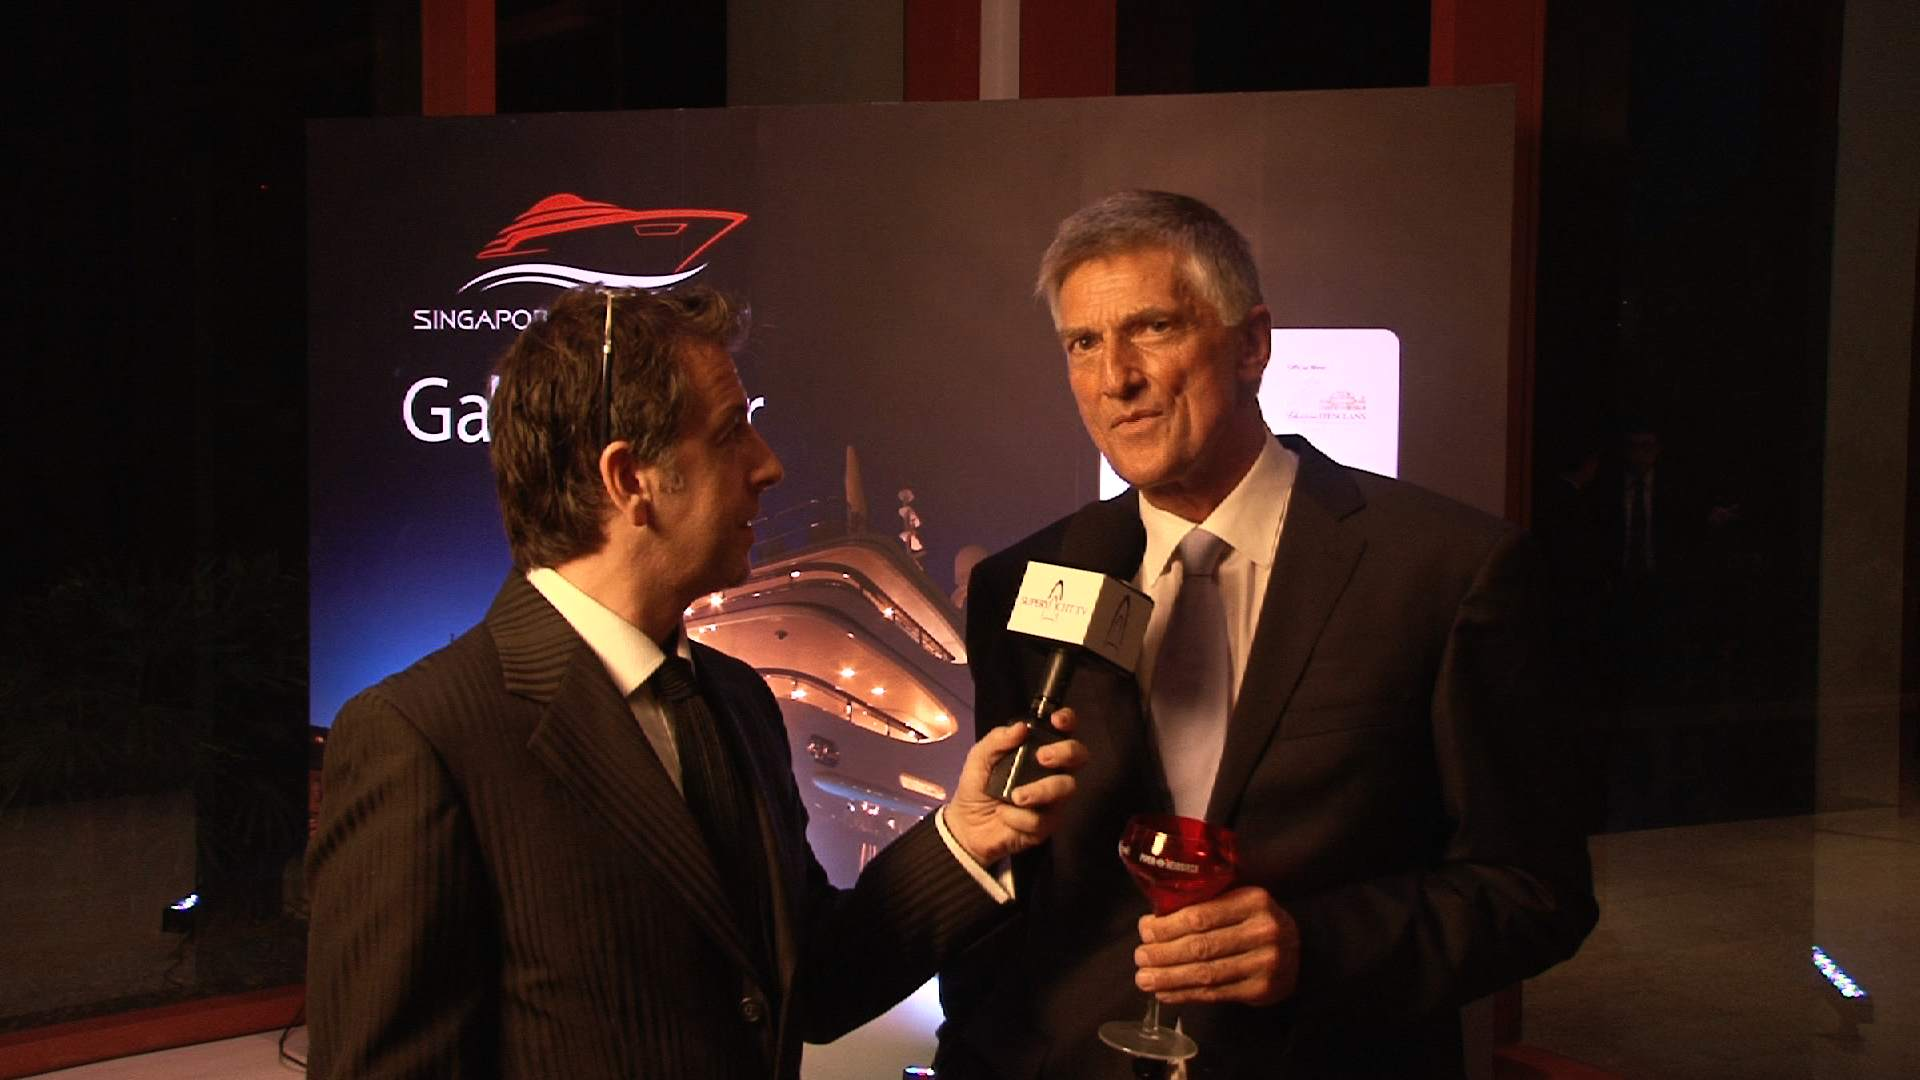 2012 Singapore Yacht Show – with Mike Simpson (Simpson Marine) in the Gala Dinner